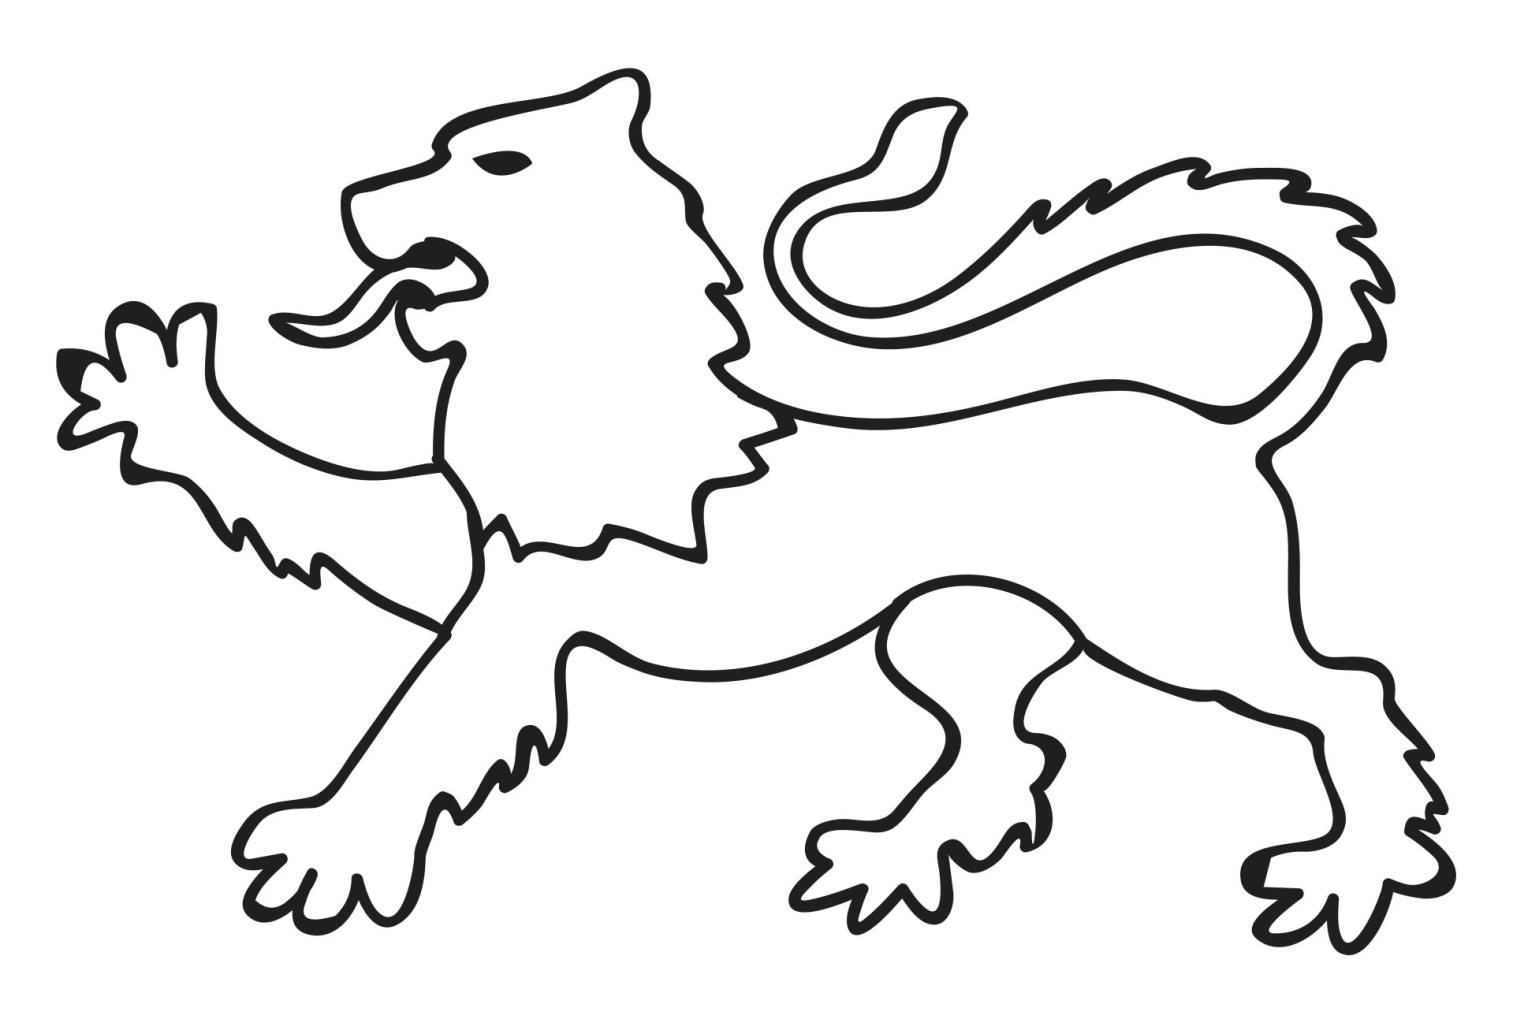 Black and white illustration of lion walking forward with paw raised symbolizing resolve in heraldic animal attitude